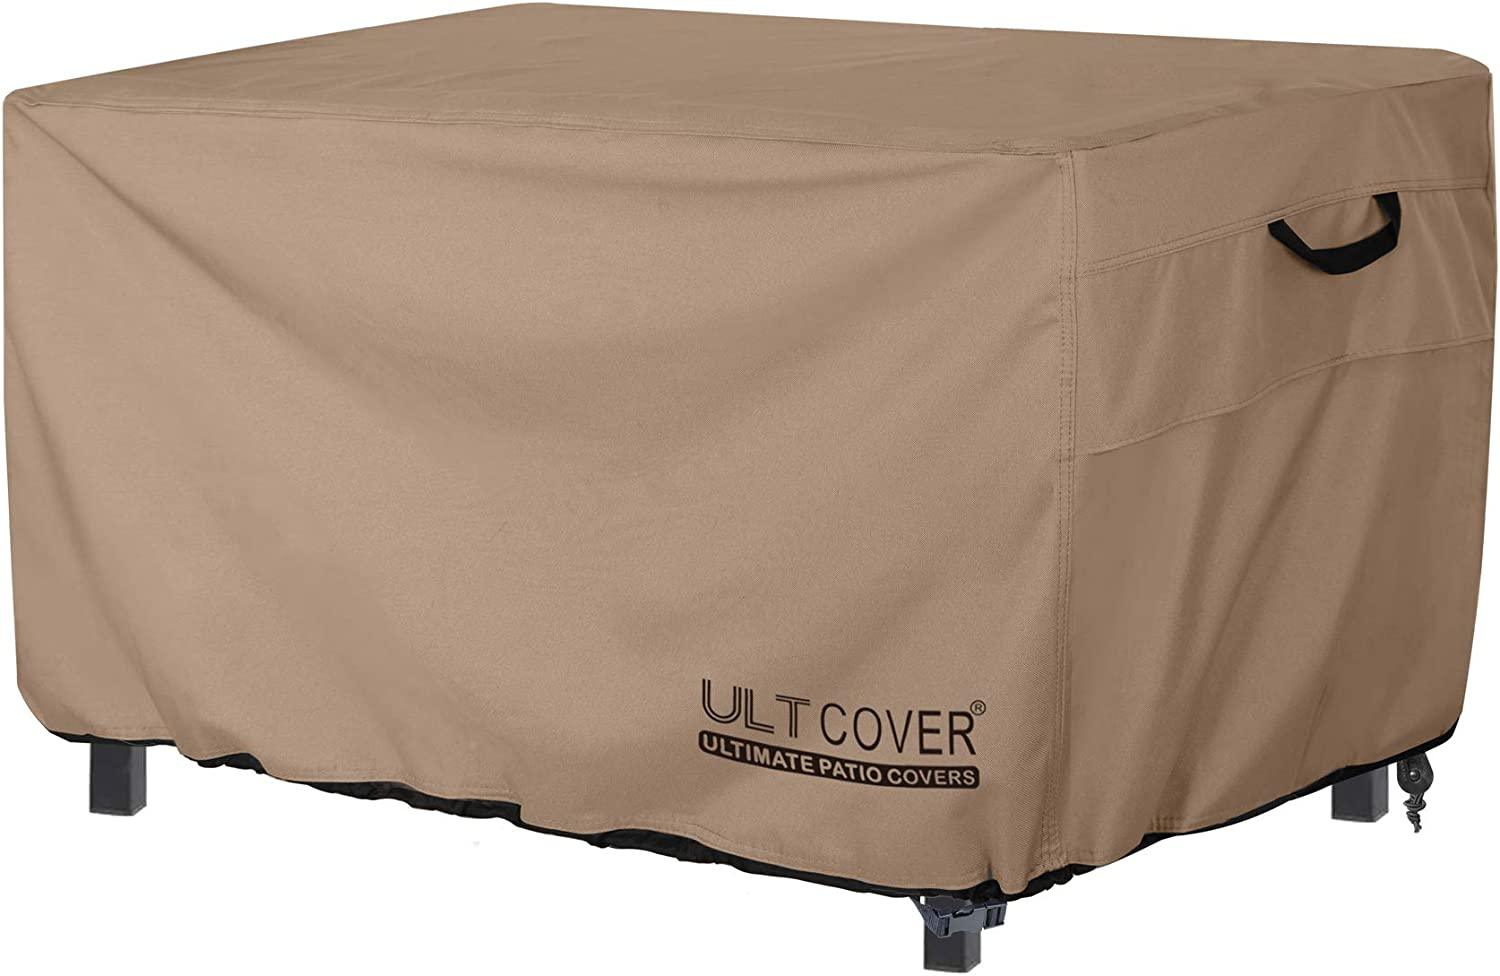 ULTCOVER Rectangular Gas Fire Pit Table Cover 44x28 inch Waterproof Heavy Duty Firepit Cover